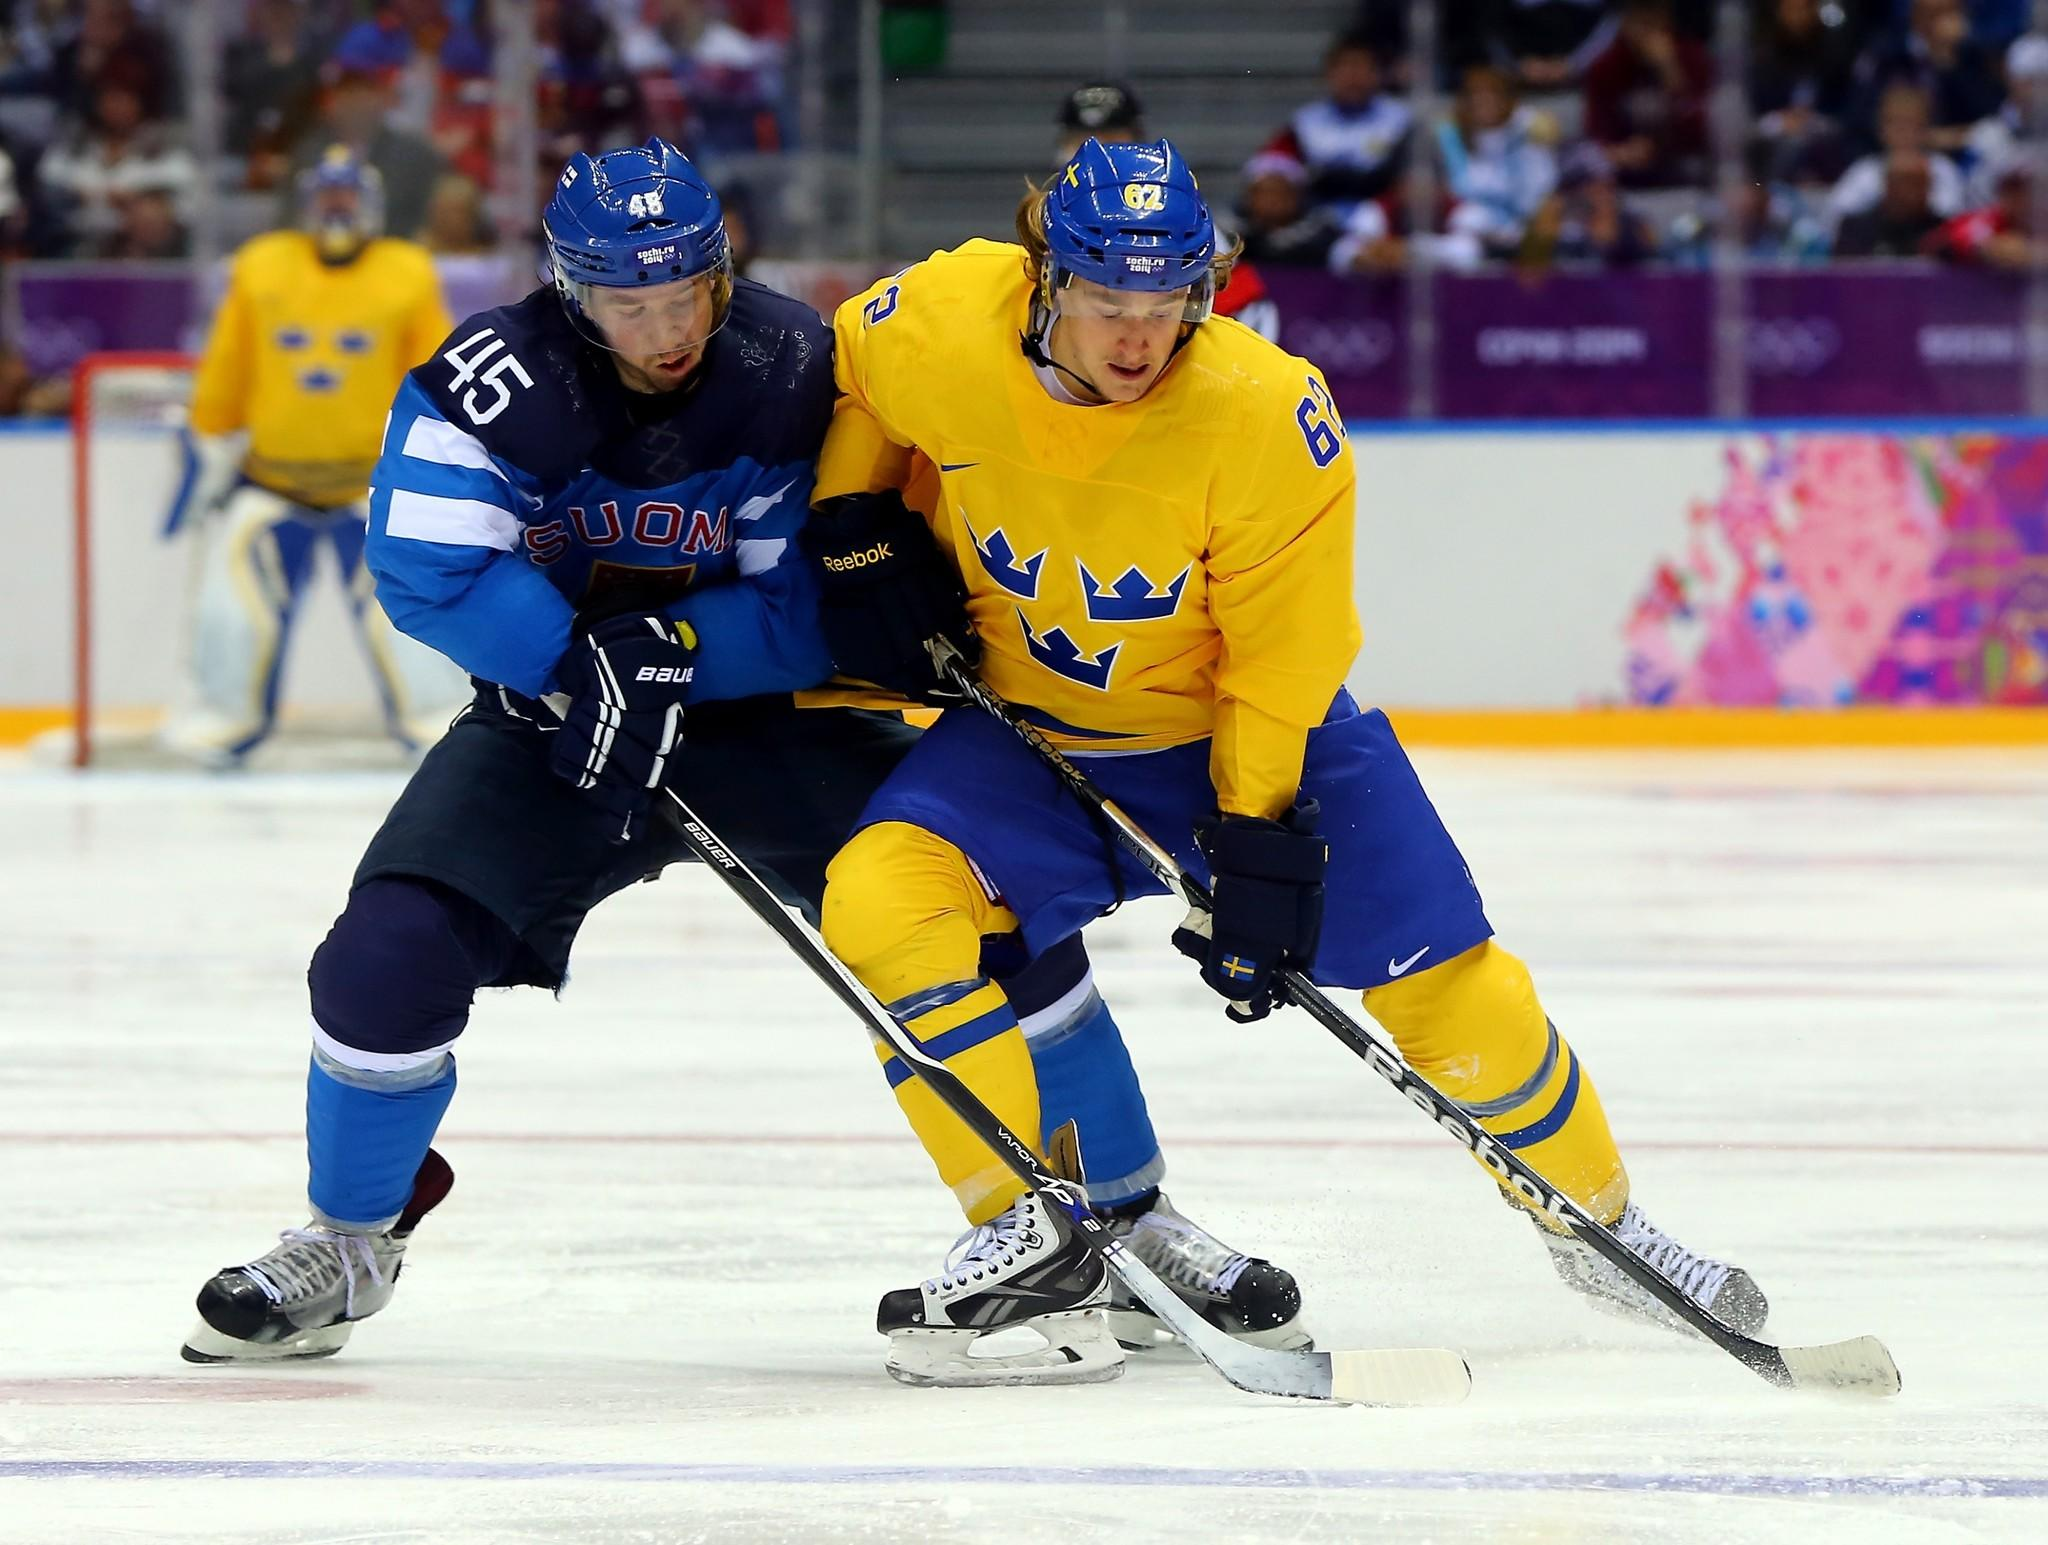 Sami Vatanen (left) of Finland and Carl Hagelin of Sweden battle for the puck Friday in Sochi.